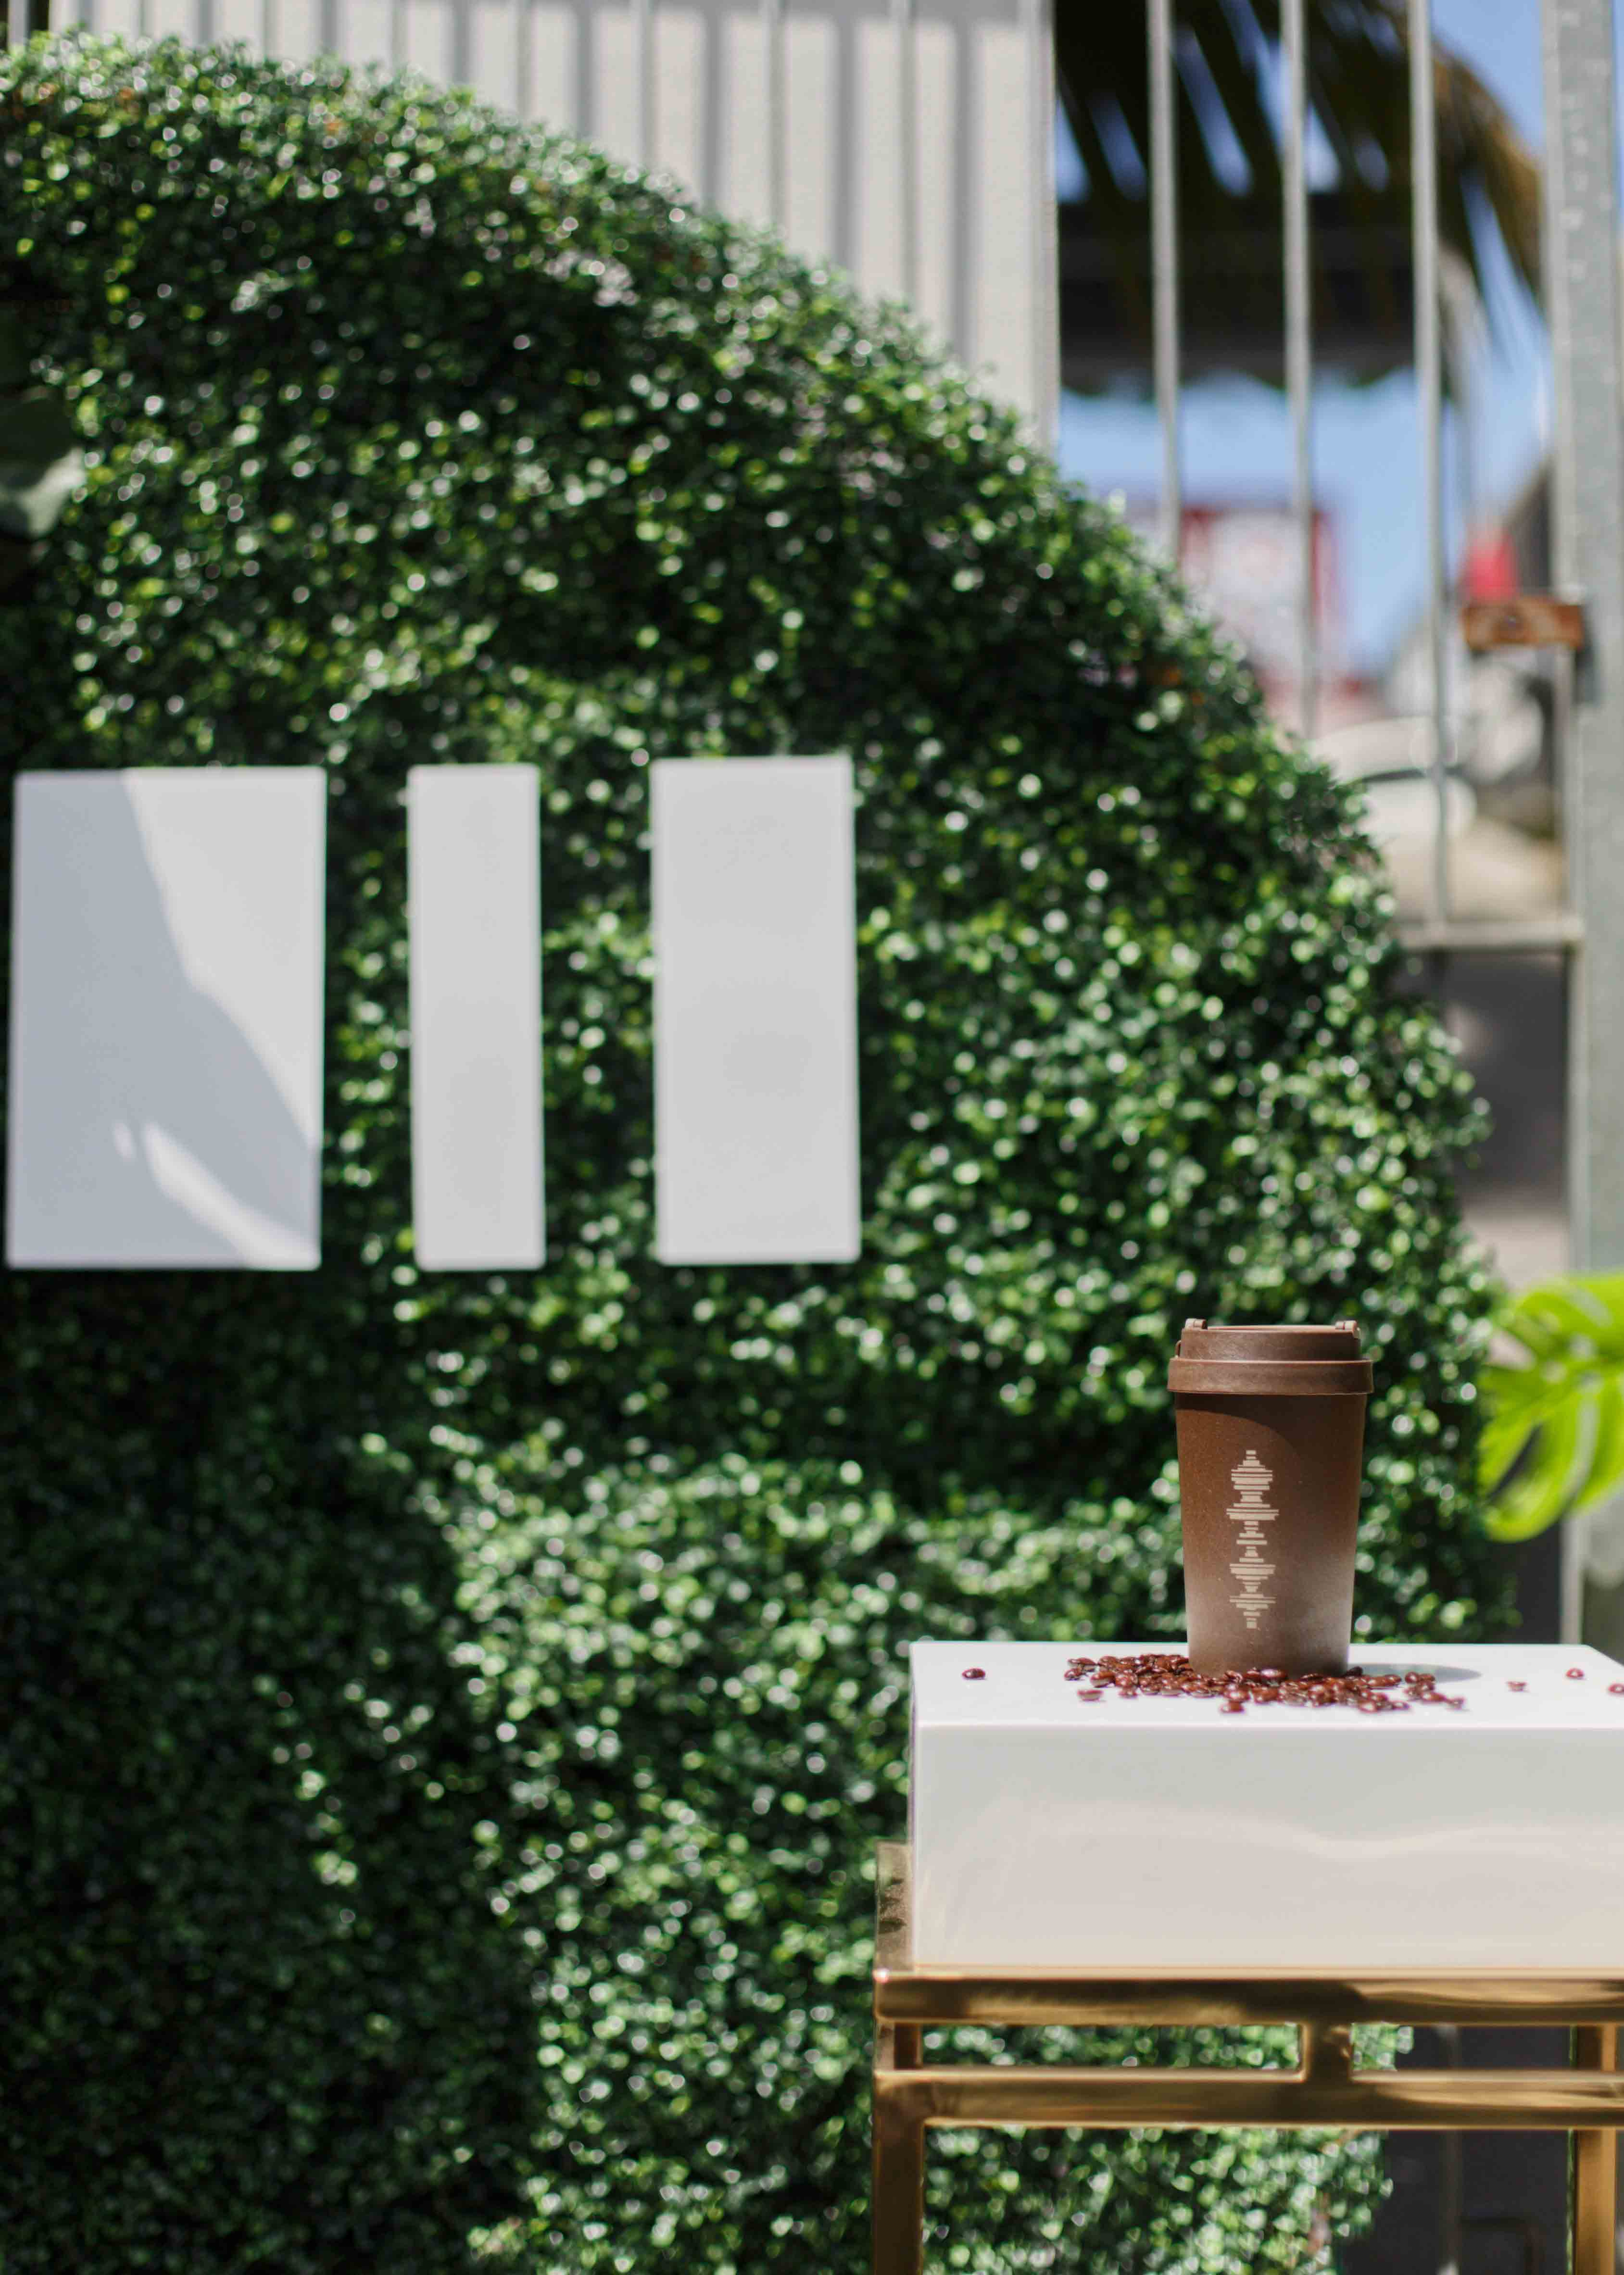 Plinth and Hedge Backdrop by Luxe Dream Event Hire / Product by iiiTech